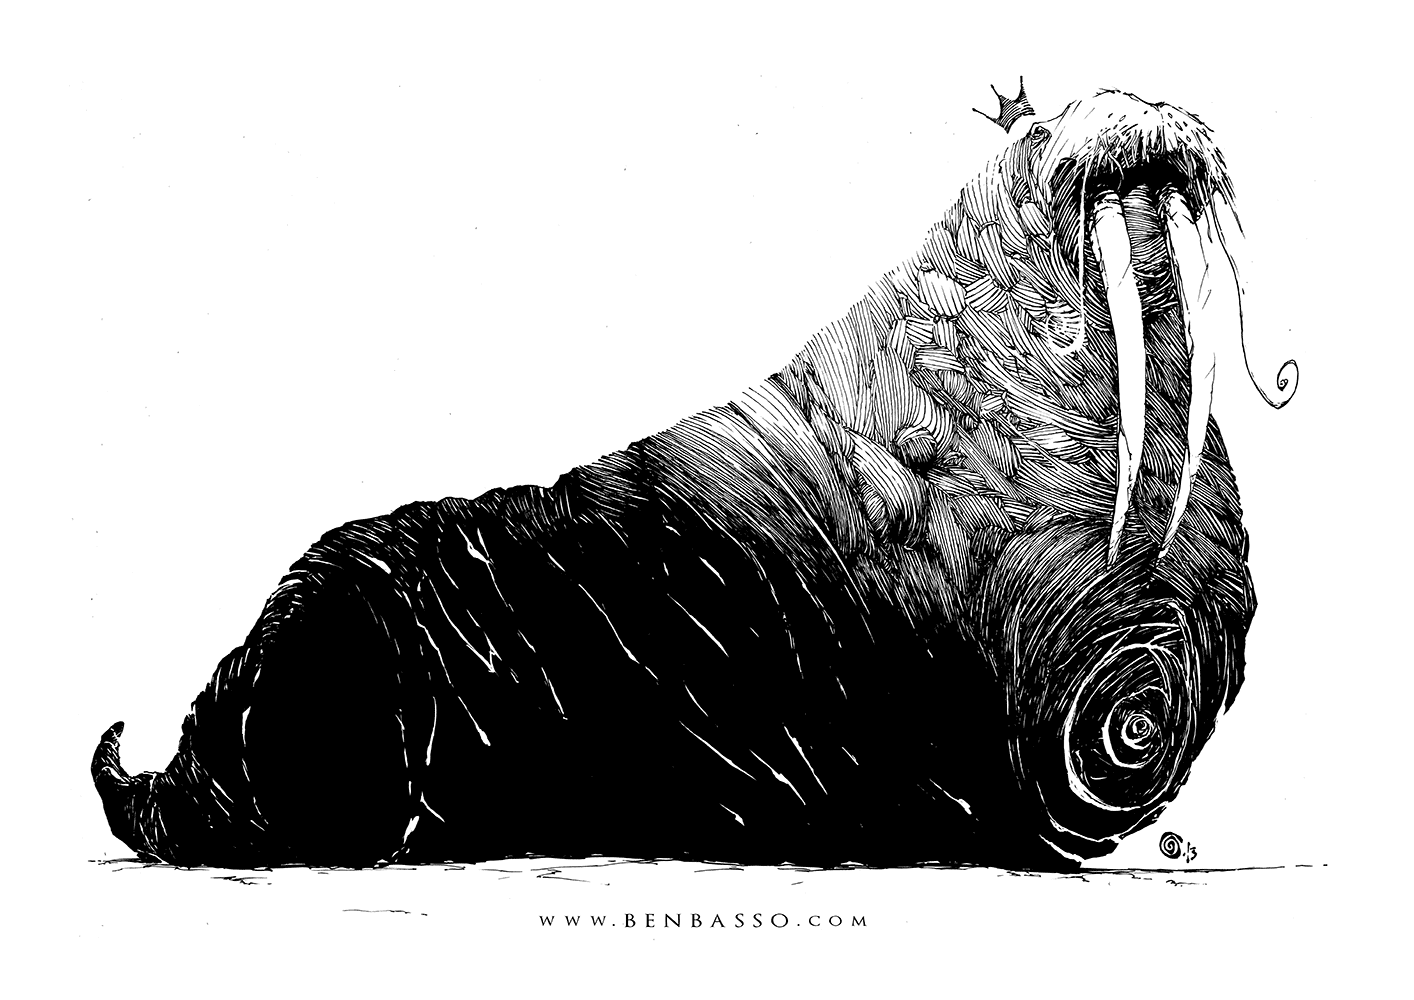 Walrus by BenBASSO on DeviantArt